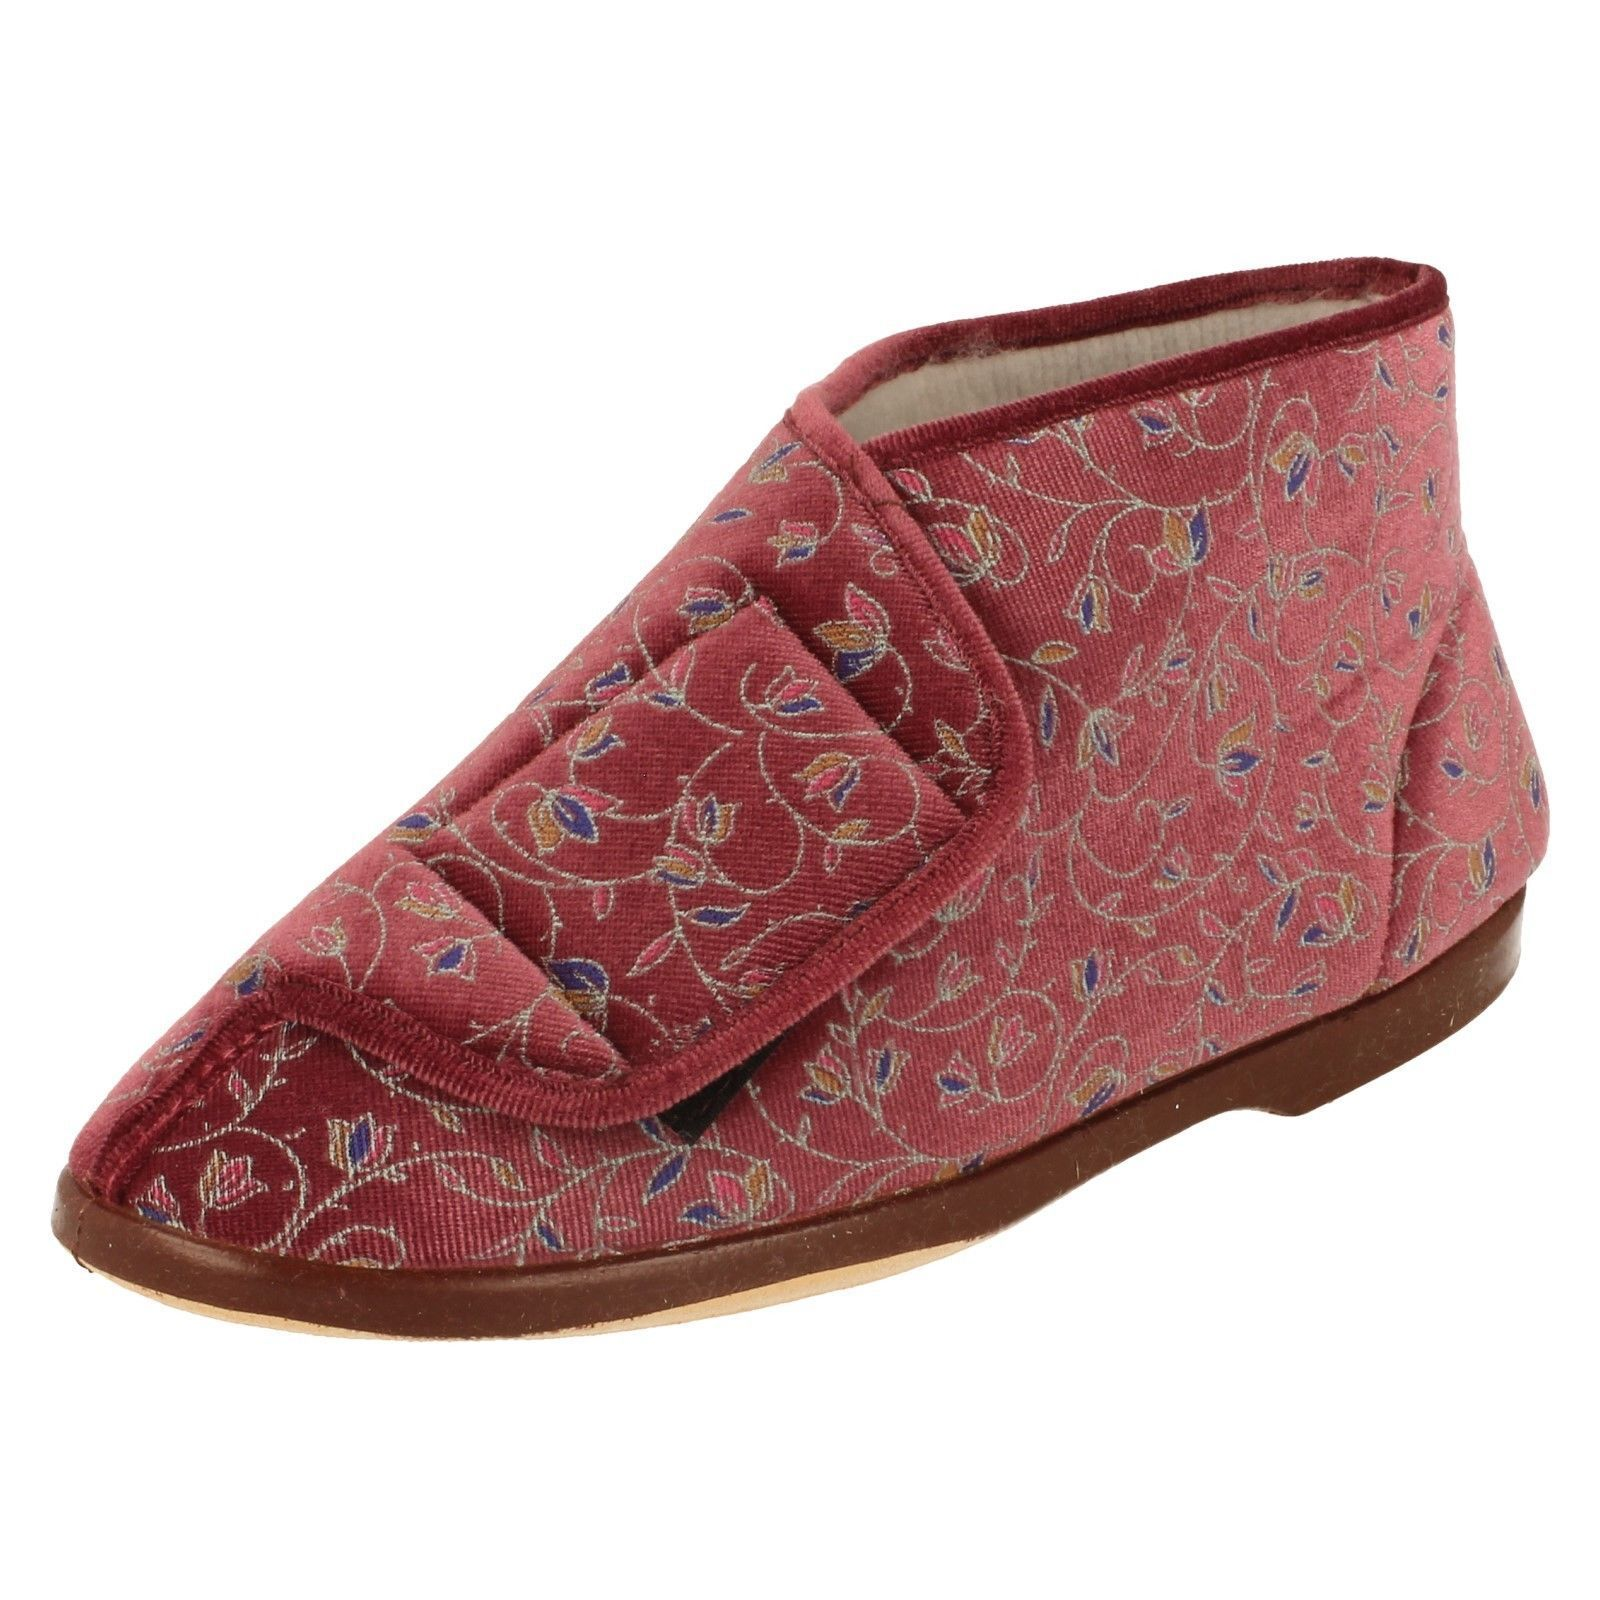 Ladylove Floral 'Edith' Ladies Heather Colour Floral Ladylove Wide Opening Boot Slippers 995314